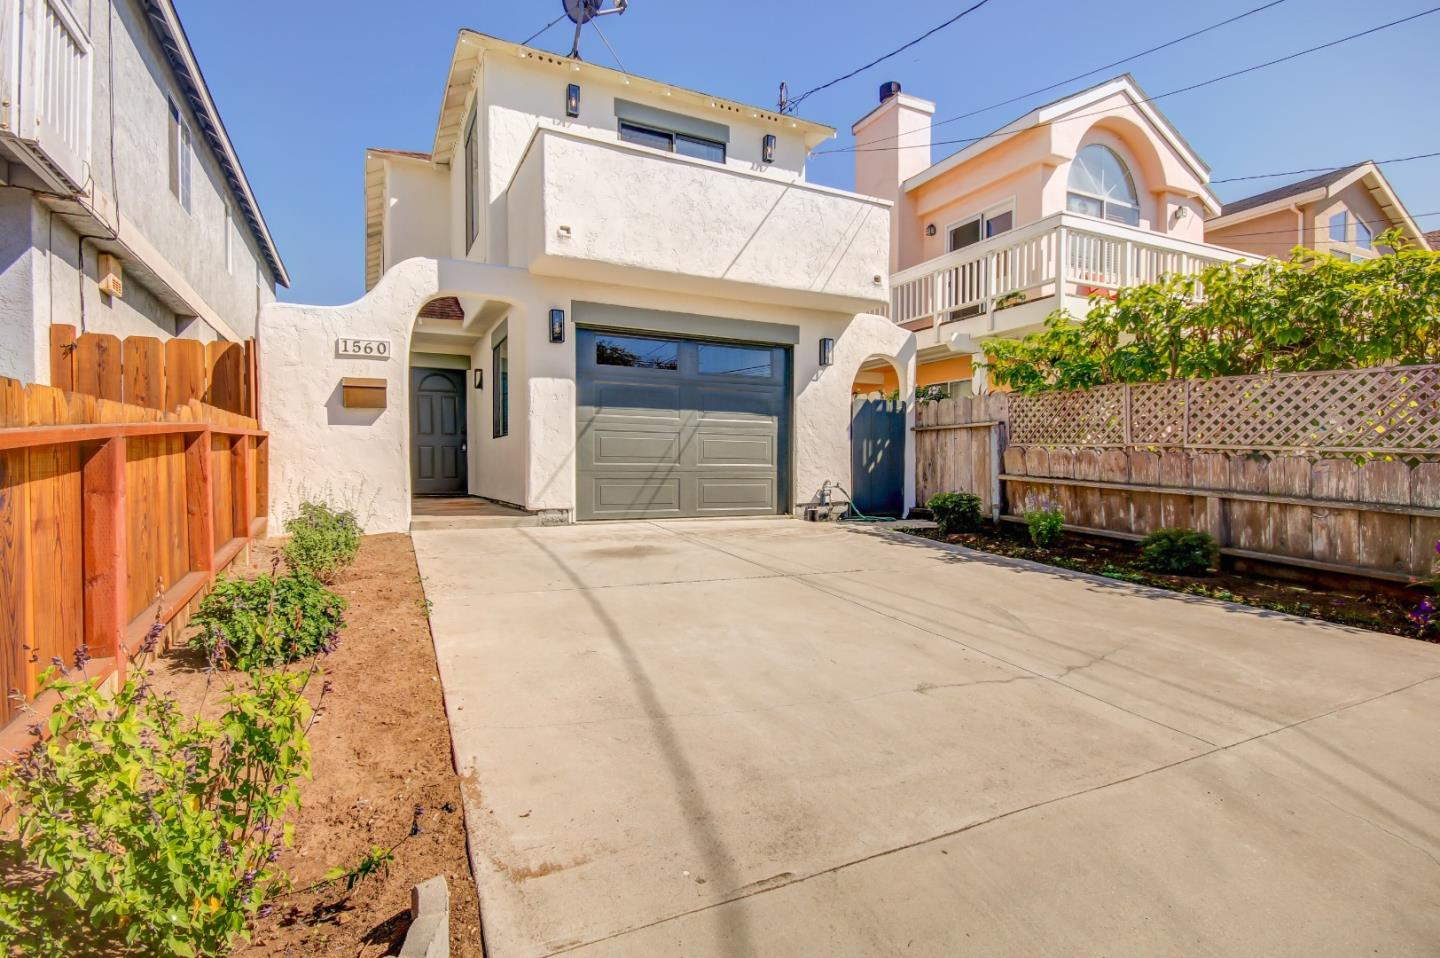 Photo of 1560 Kenneth ST, SEASIDE, CA 93955